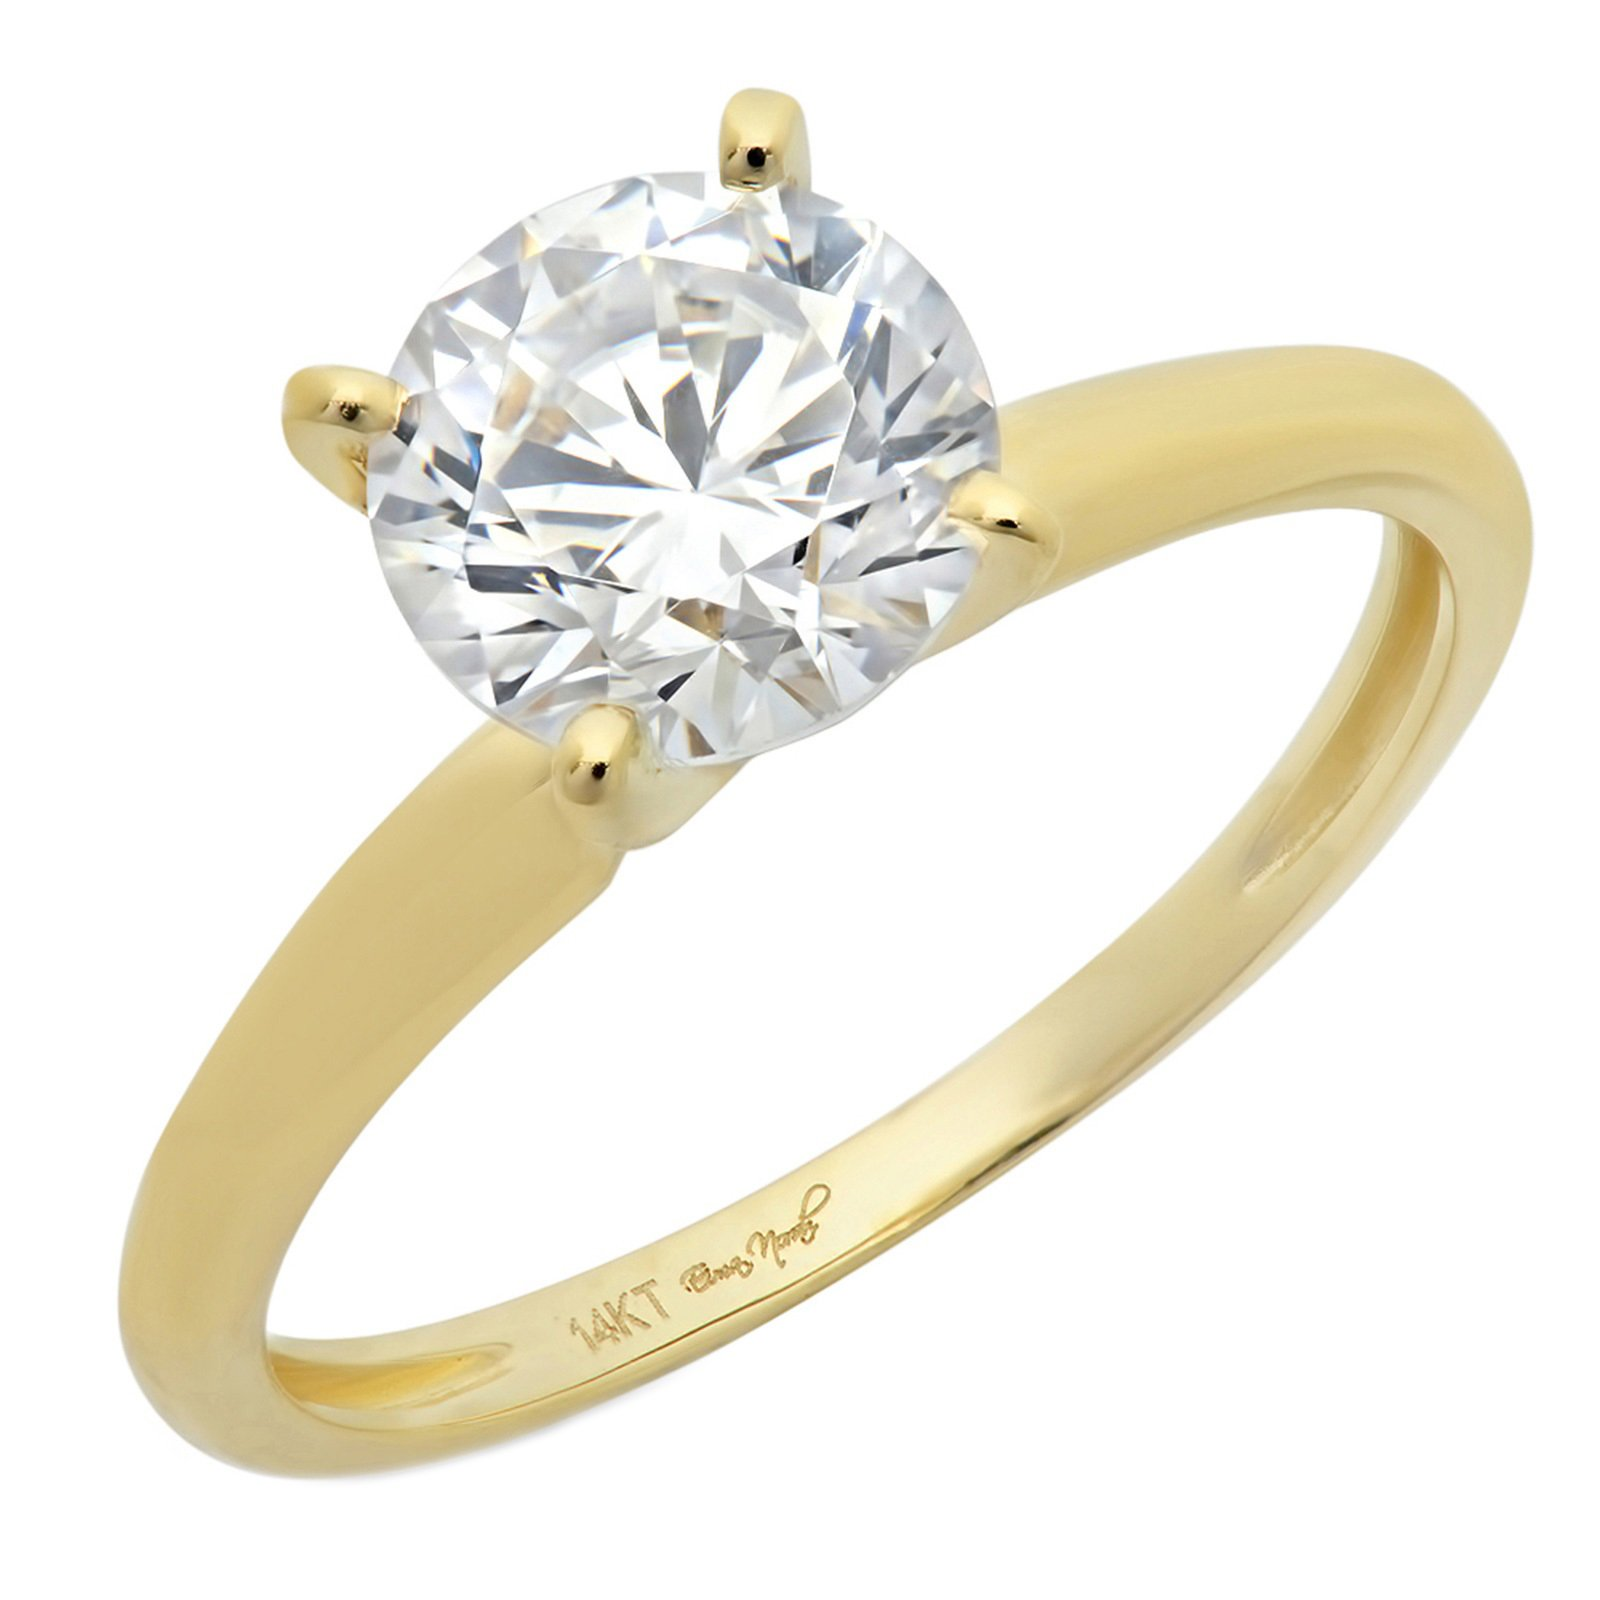 1.95ct Brilliant Round Cut Solitaire Highest Quality Moissanite Ideal D 4-Prong Statement Ring in Solid Real 14k Yellow Gold for Women